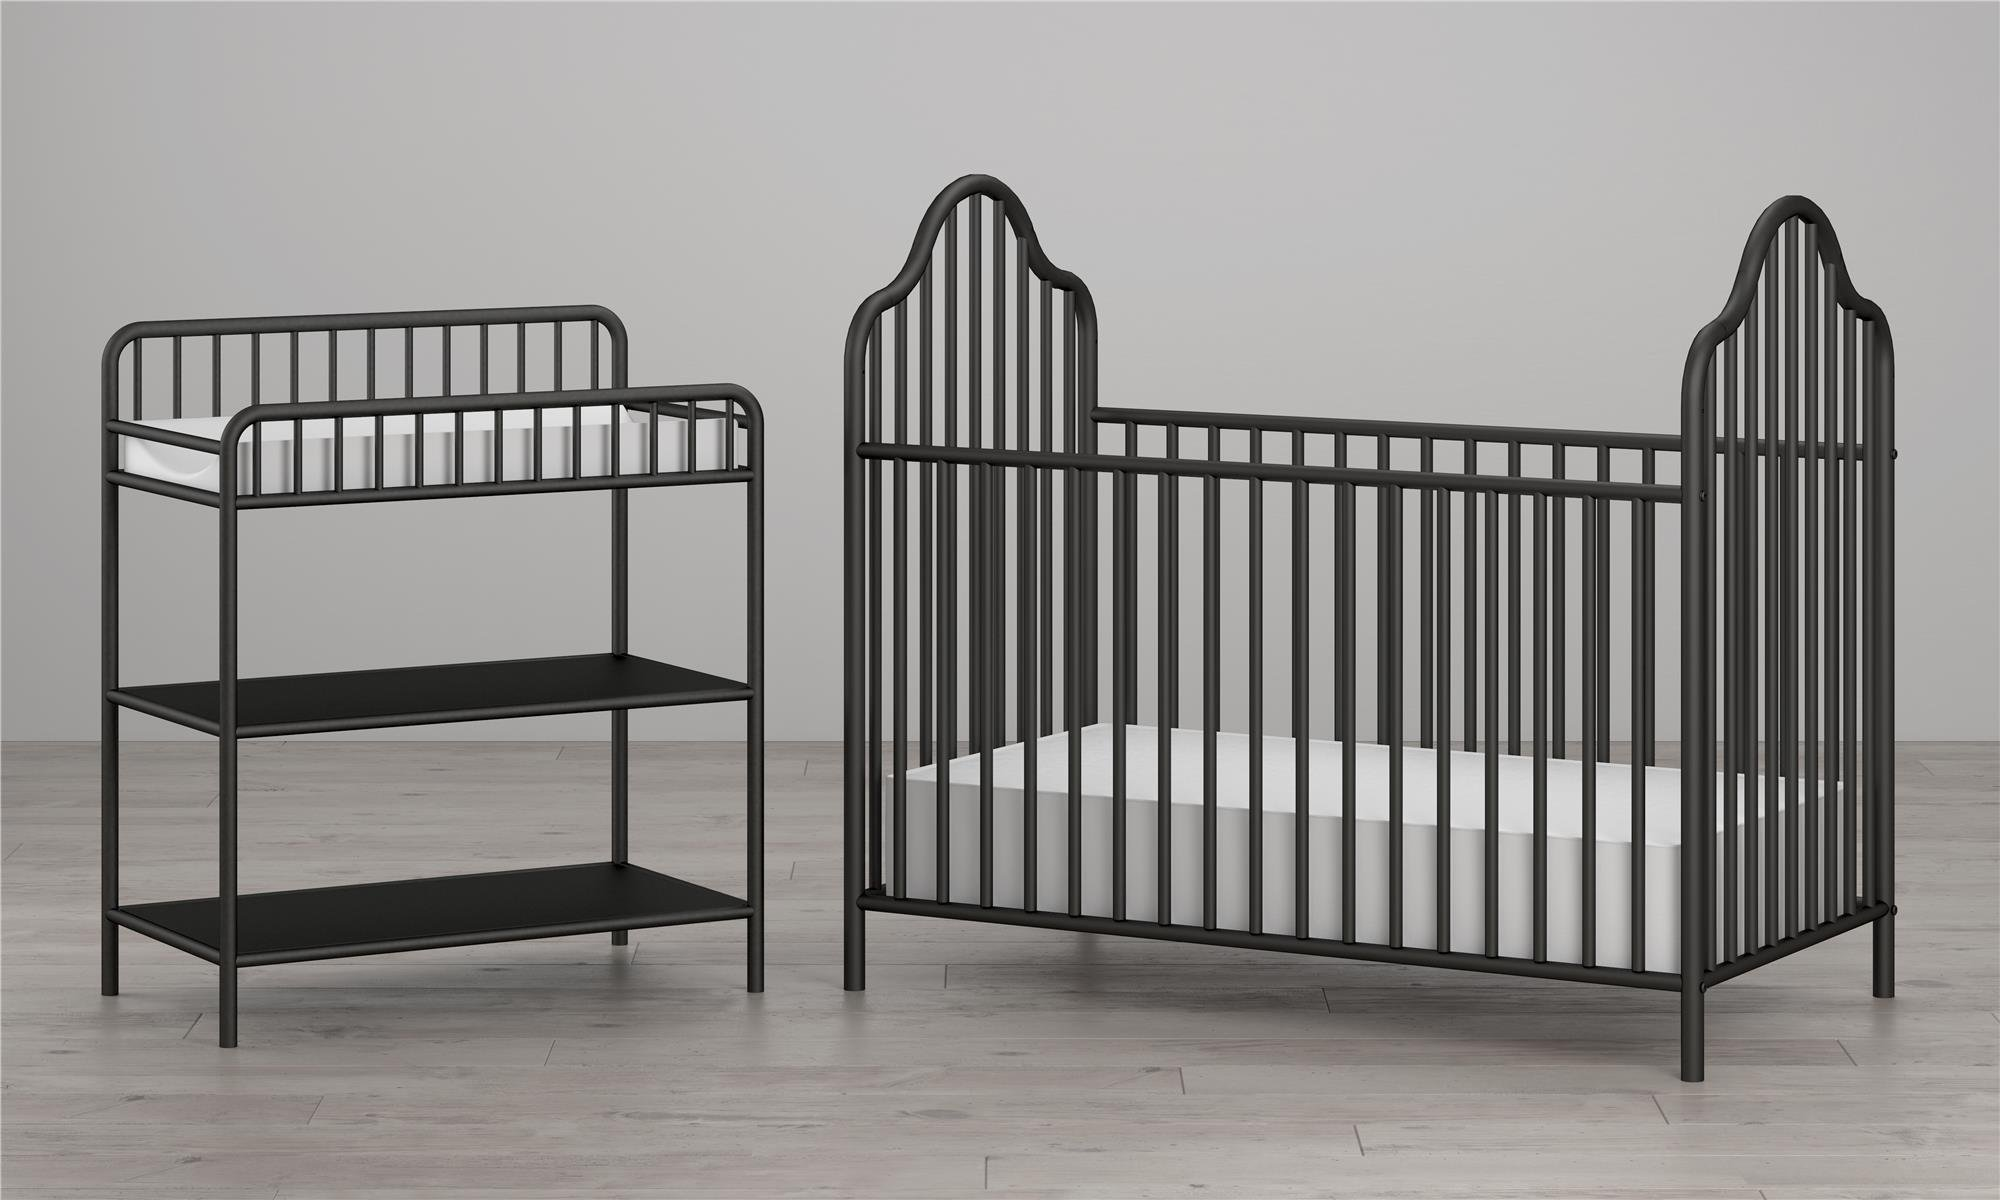 Little Seeds Rowan Valley Lanley Metal Crib and Changing Table Set, Black by Little Seeds